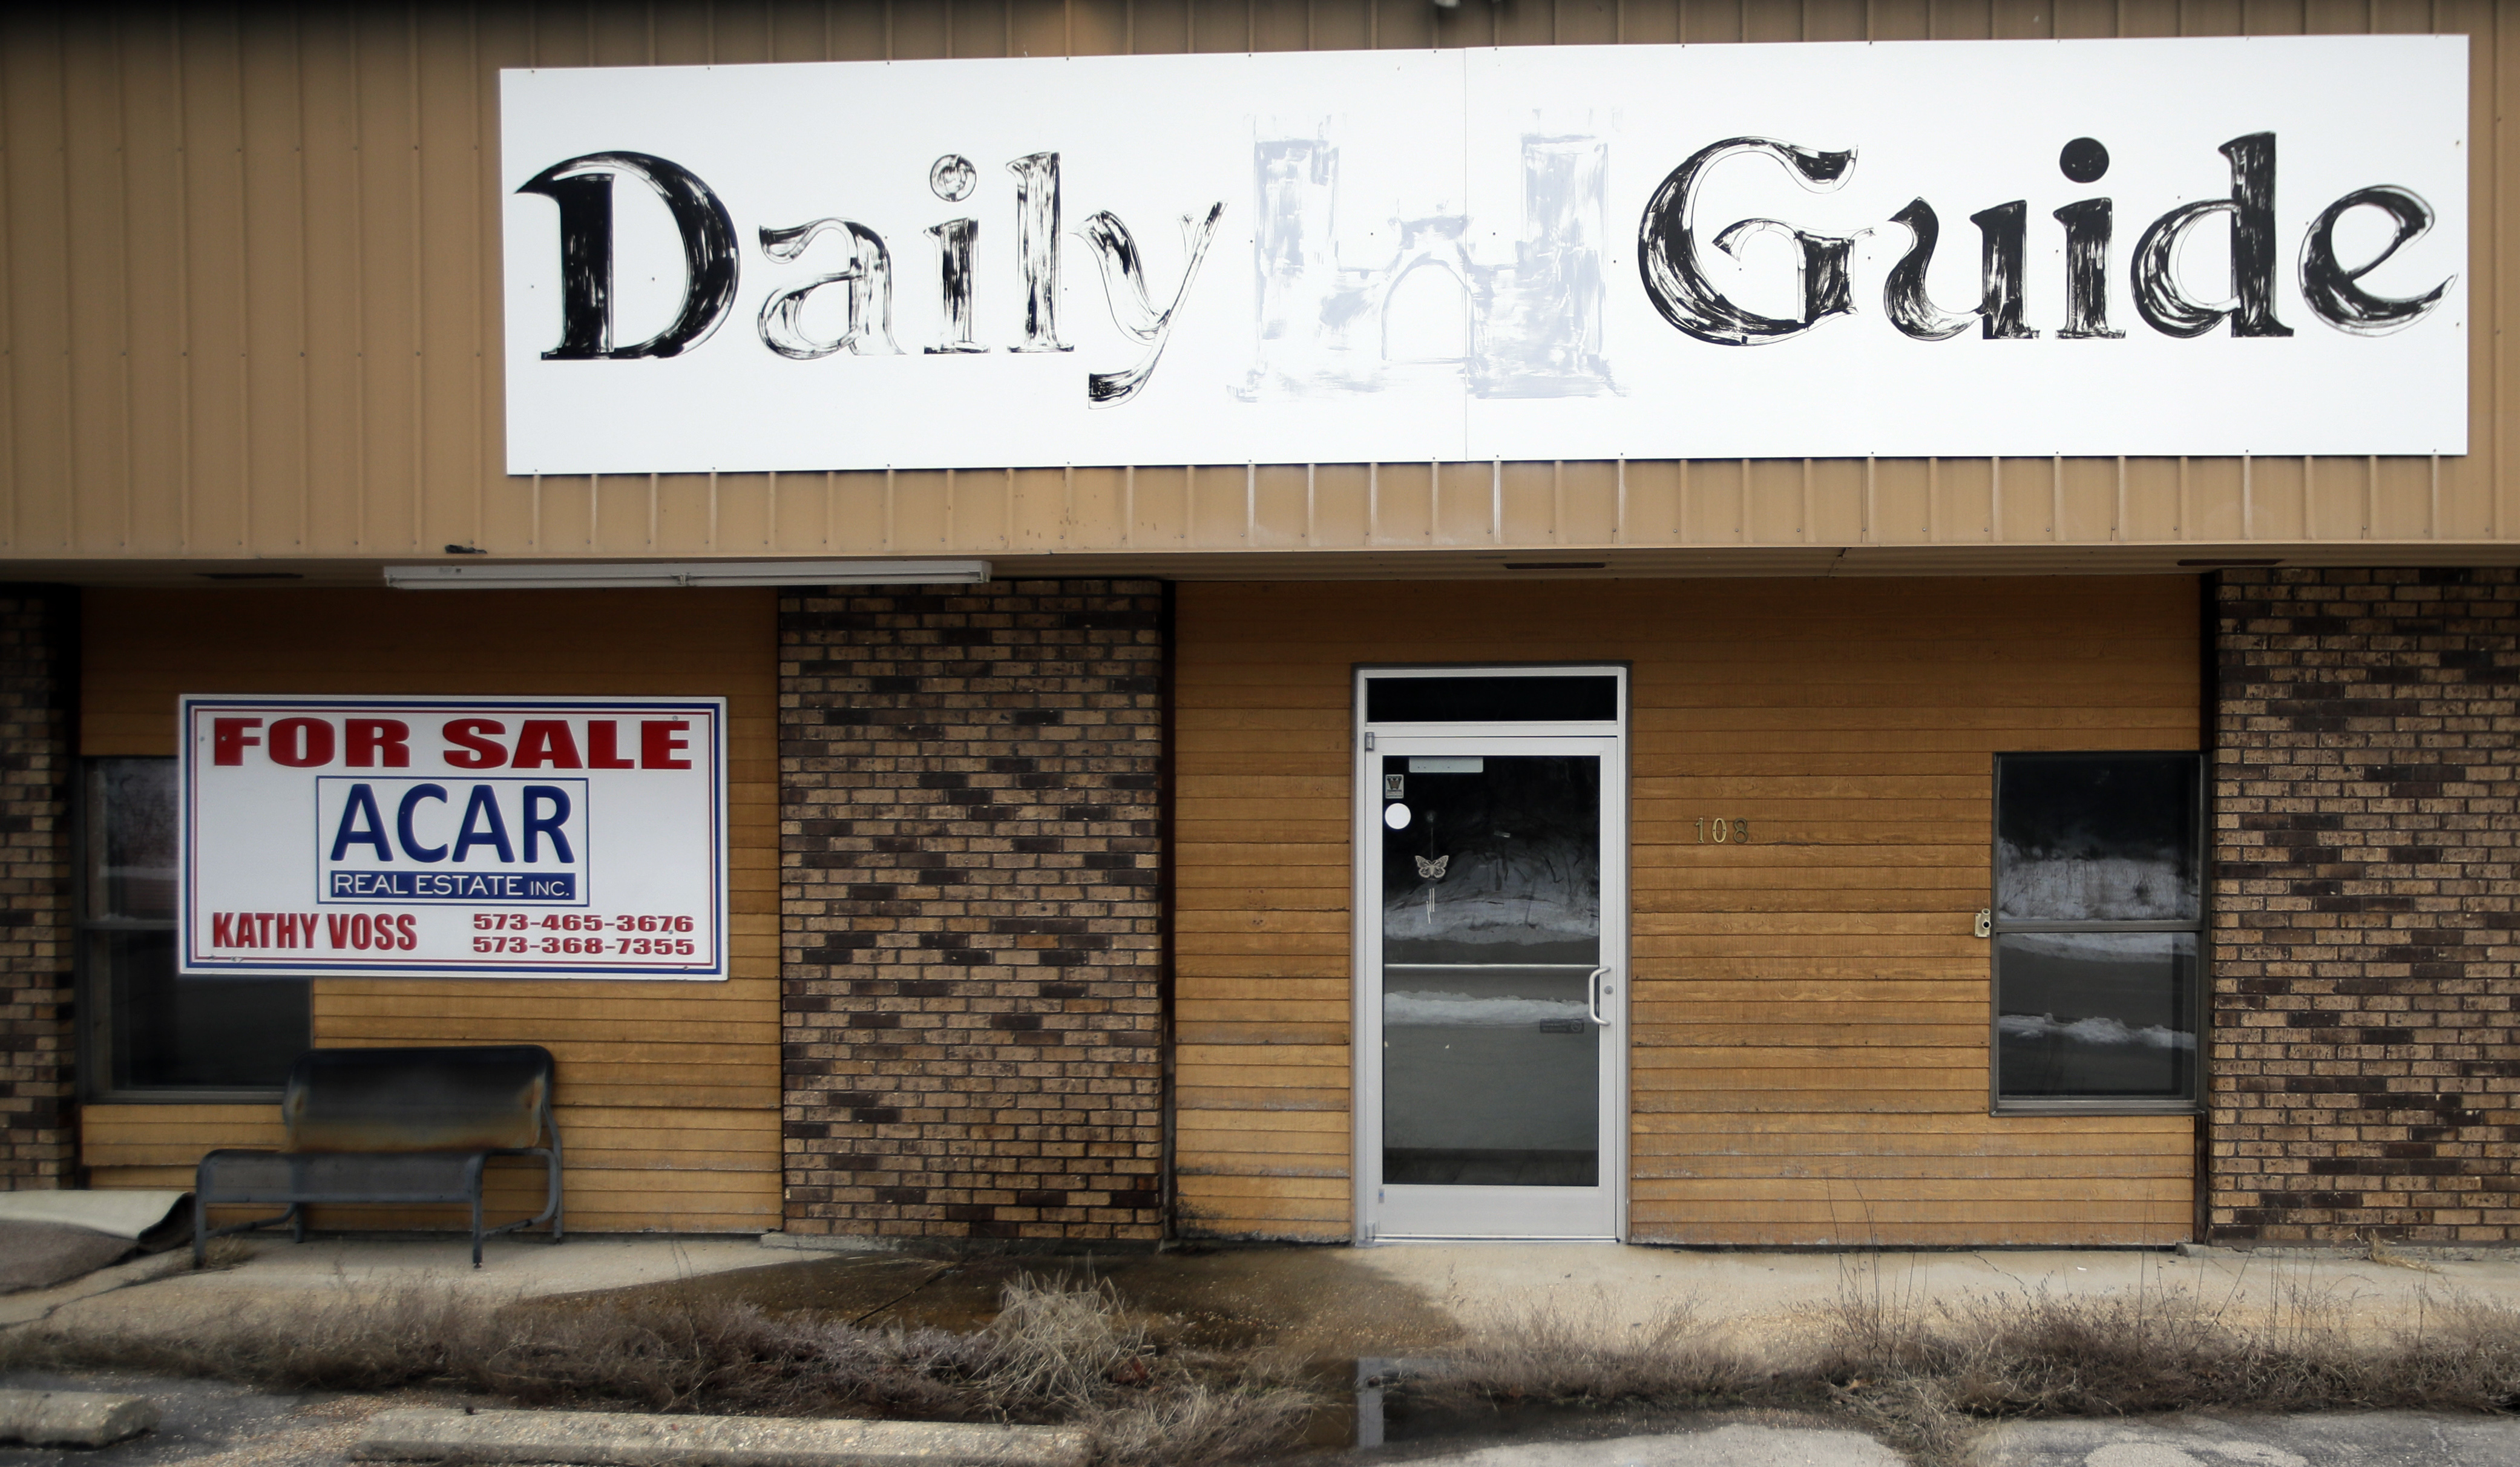 Daily Guide newspaper building for sale